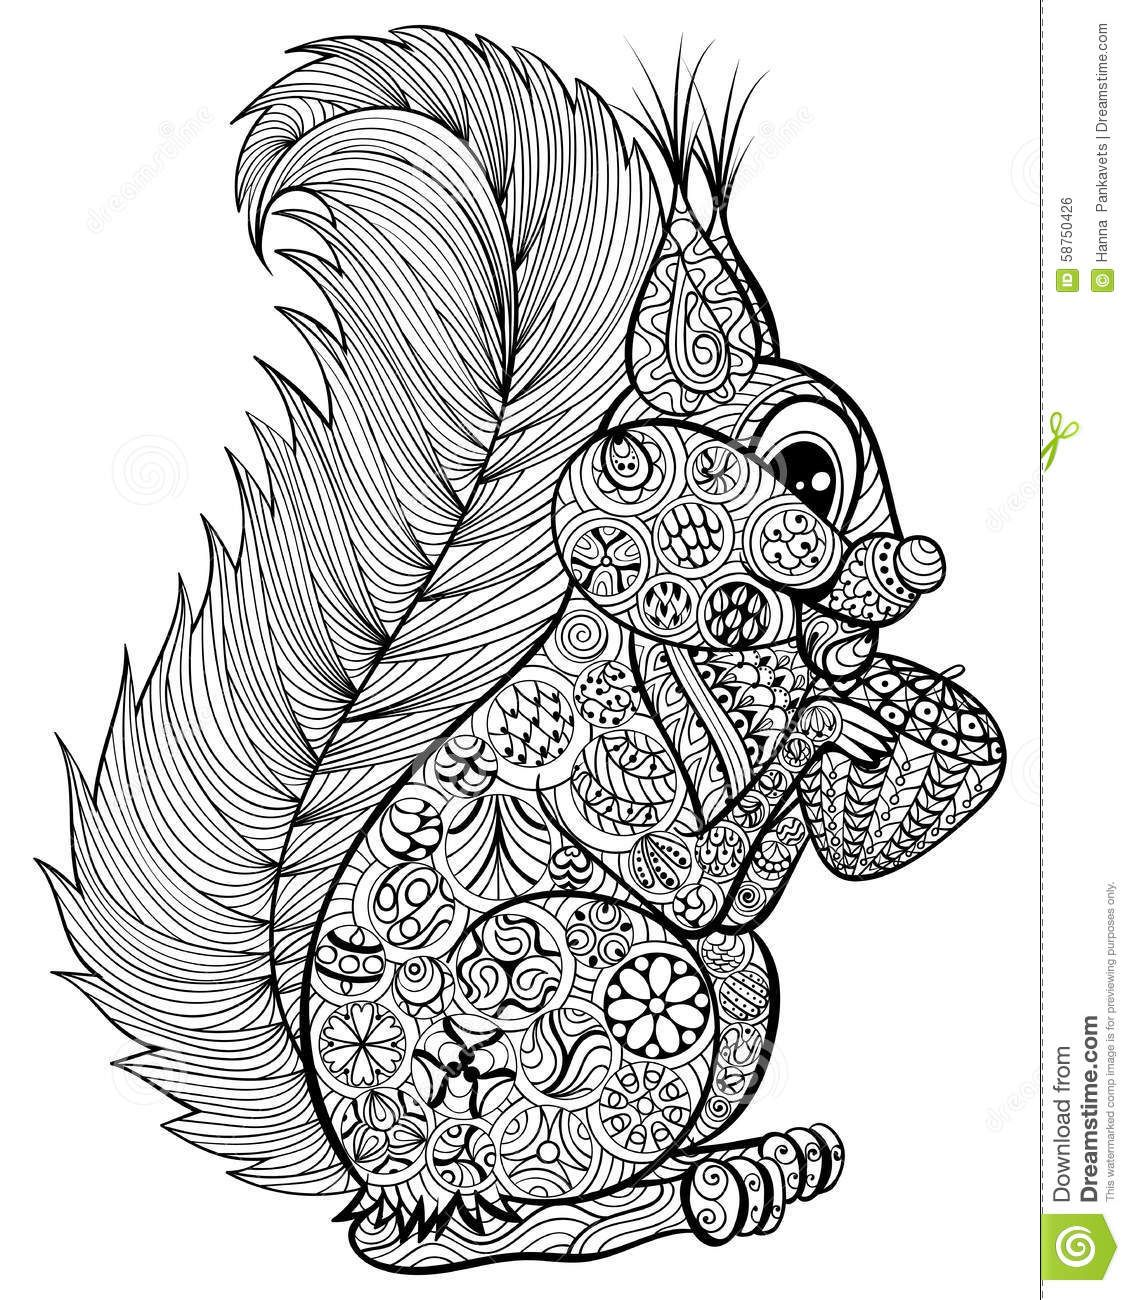 Anti stress colouring pages for adults - Hand Drawn Funny Squirrel With Nut For Adult Anti Stress Coloring Page